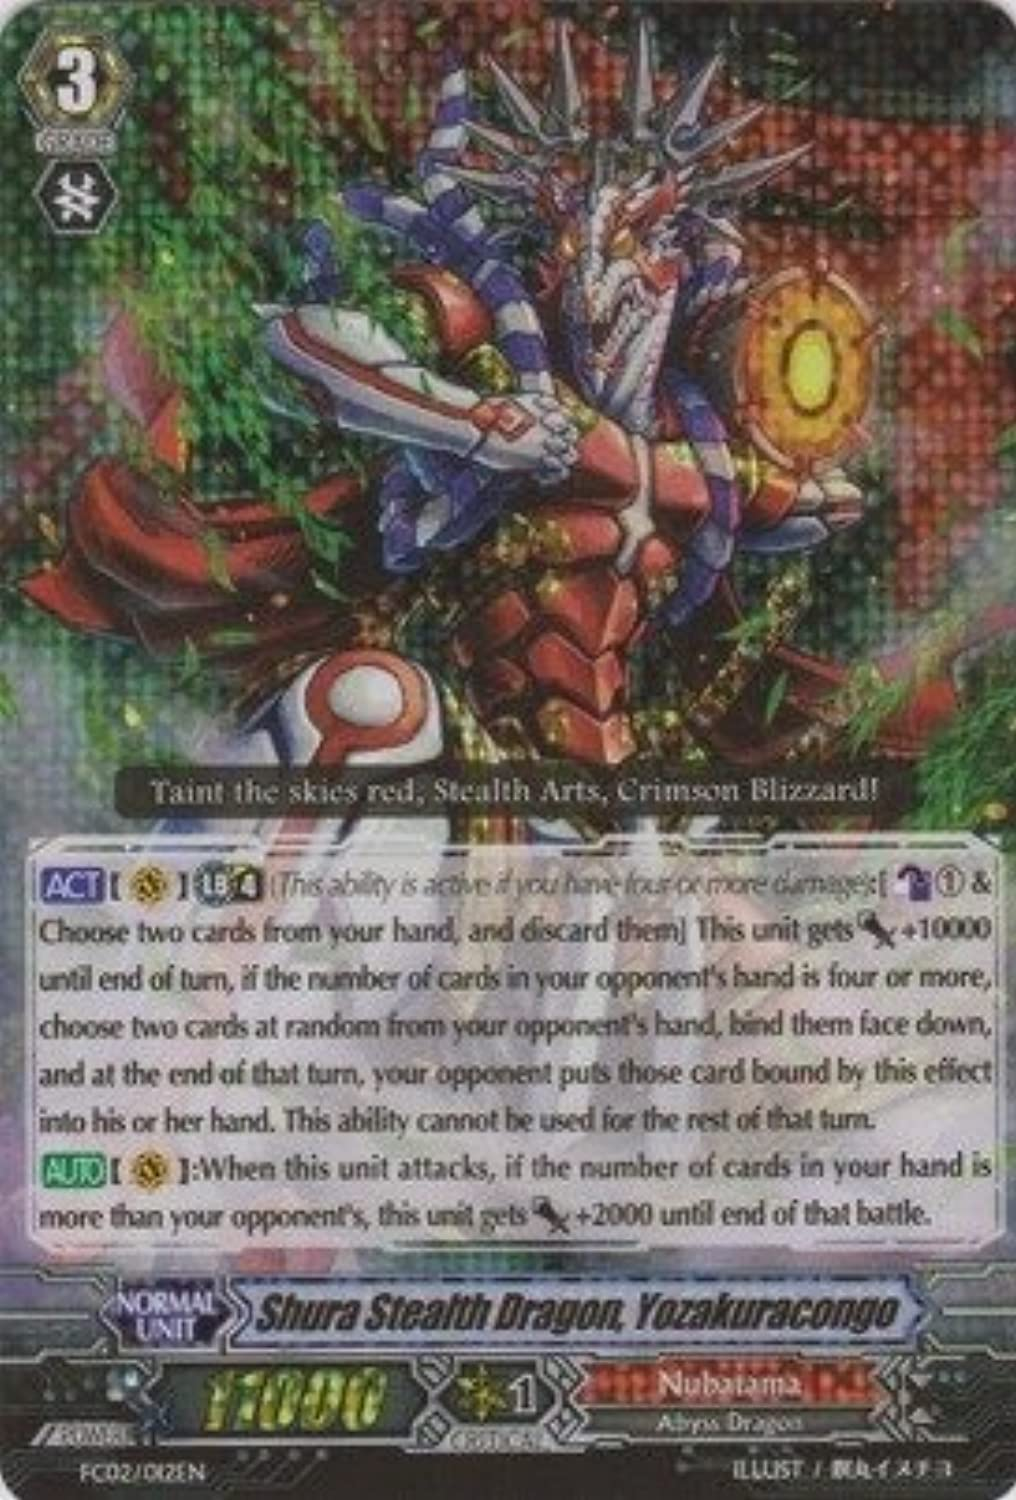 Cardfight   Vanguard TCG - Shura Stealth Dragon, Yozakuracongo (FC02 012EN) - Fighter's Collection 2014 by Cardfight   Vanguard TCG